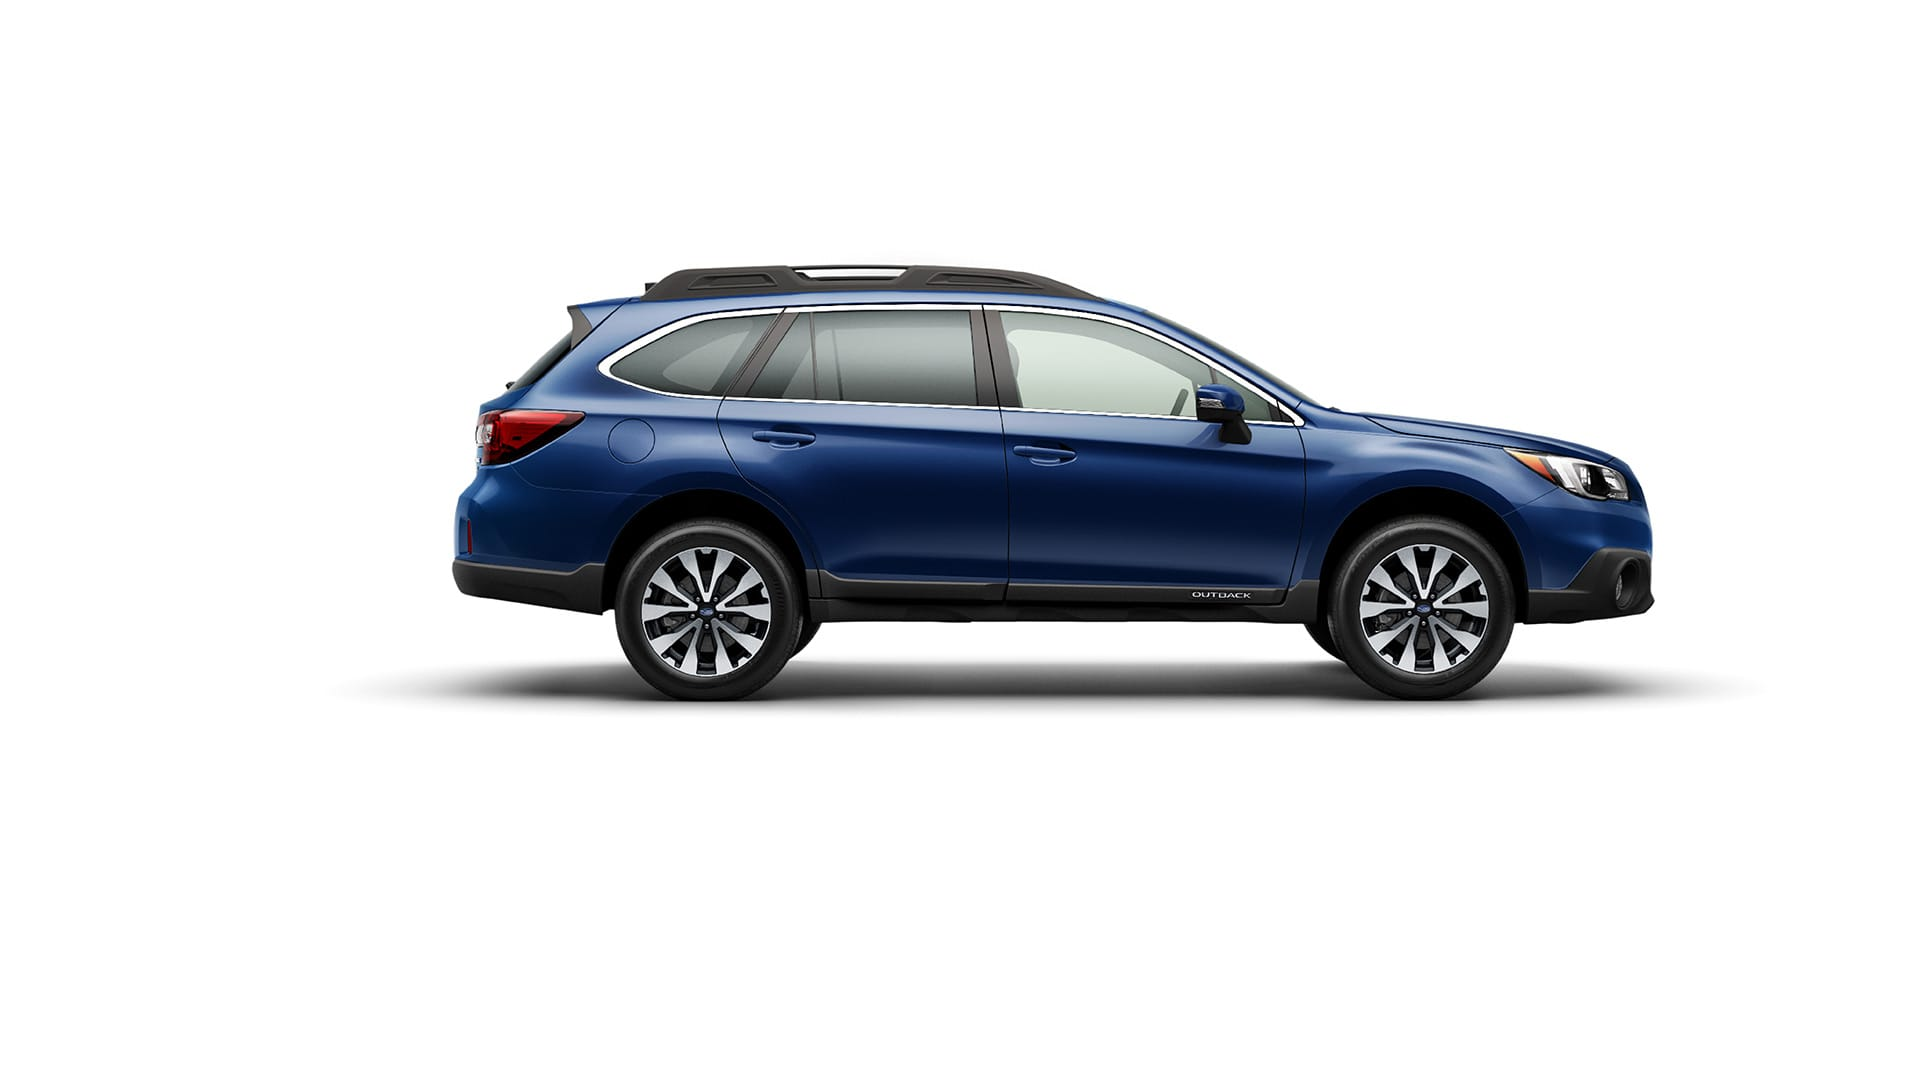 As an IIHS Top Safety Pick for eight years running (2009–2016), it's no wonder we've found ways to make the 2017 Outback even better at protecting what's inside. SUBARU STARLINK<sup>™</sup> Safety and Security Connected Services offer instant access to help when you need it most 24/7, 365 days a year.<sup>1</sup> Its AWD capability means you'll have control, even in unfavorable weather. New for 2017, available Reverse Automatic Braking<sup>2</sup> can sense objects behind you while backing up at a slow speed and apply the brakes to help you avoid a collision.